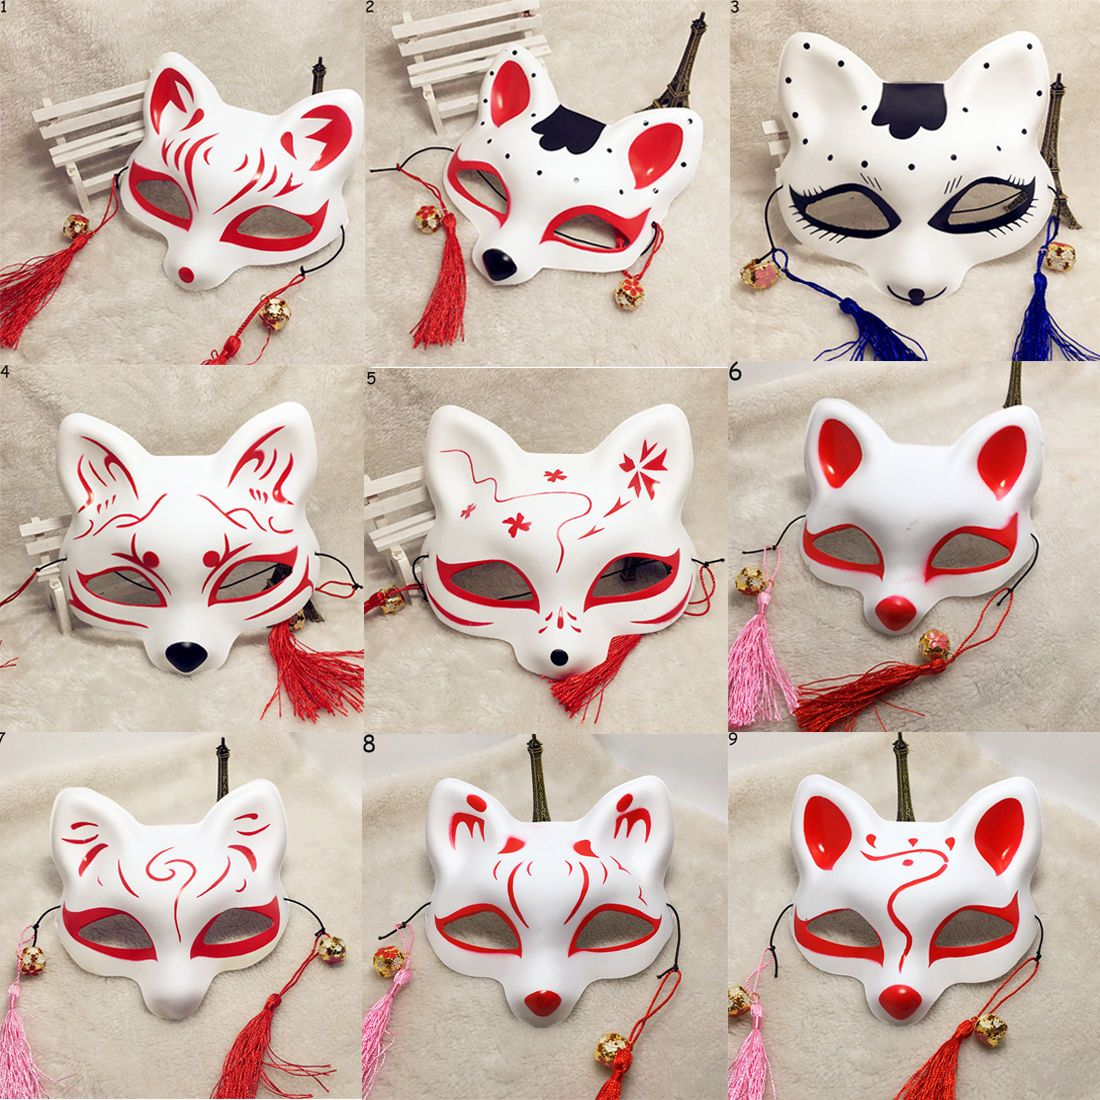 32+ Anime girl cosplay mask ideas in 2021